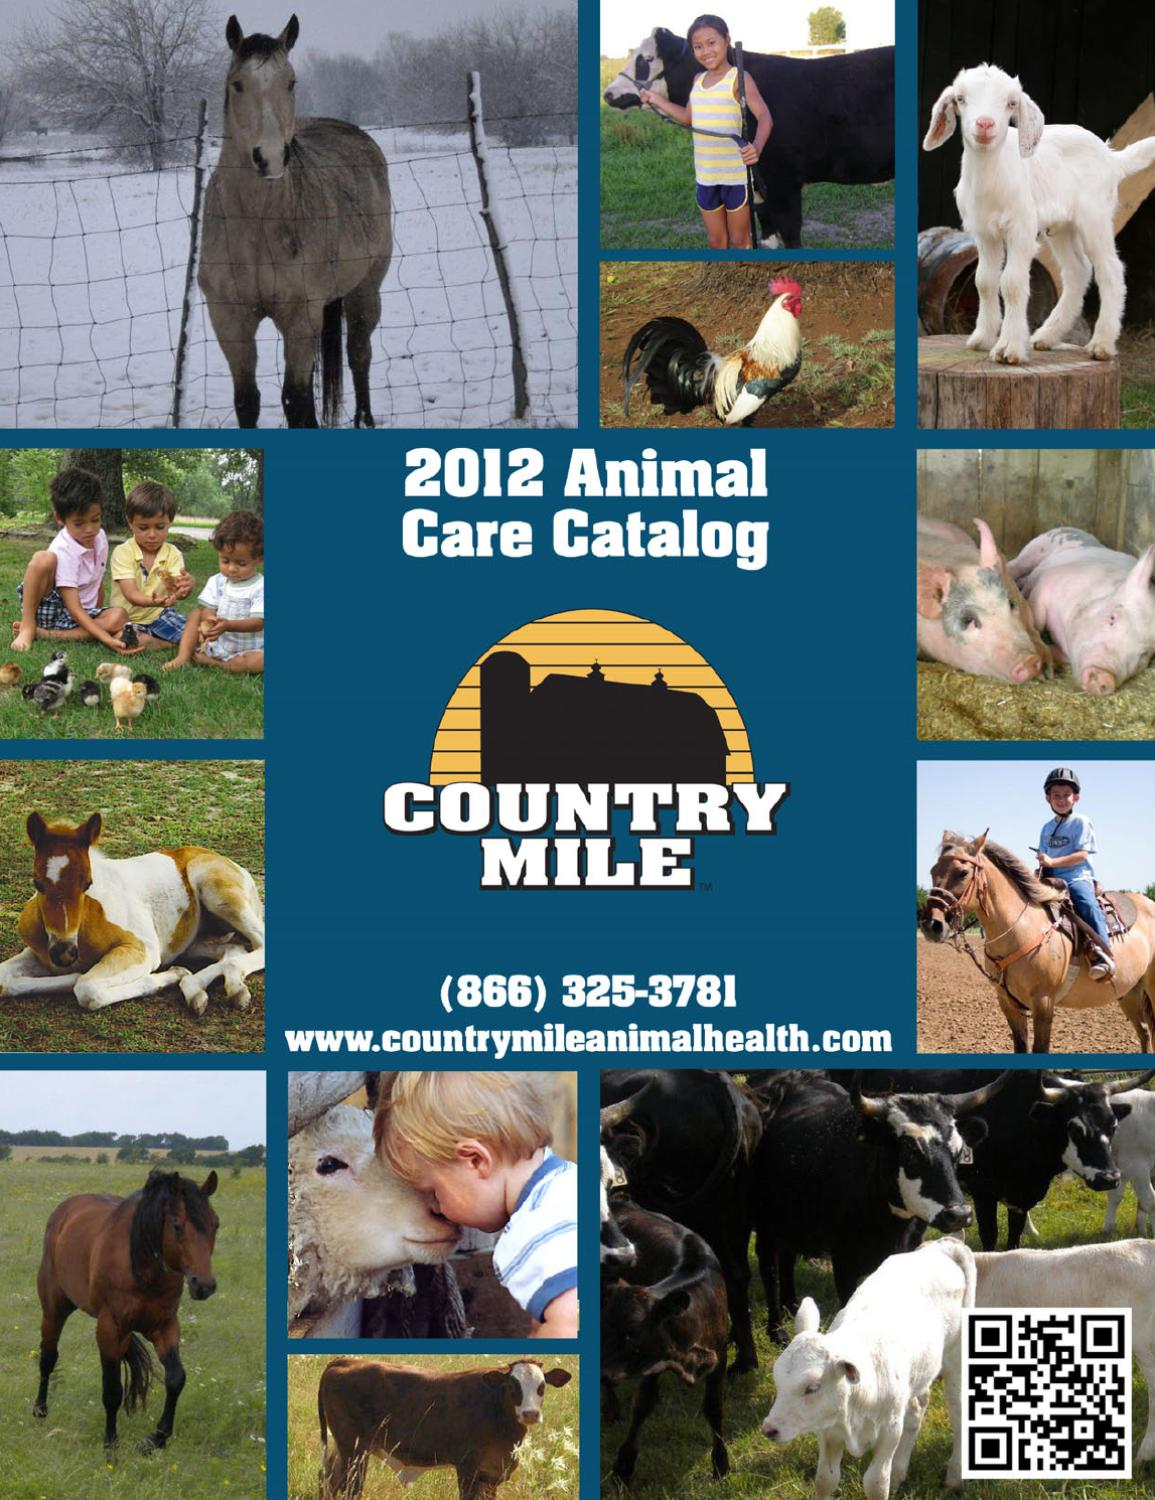 2012 Country Mile Animal Care Catalog By Forum Communications Aseptic Jel Plus Dispenser Printing Issuu